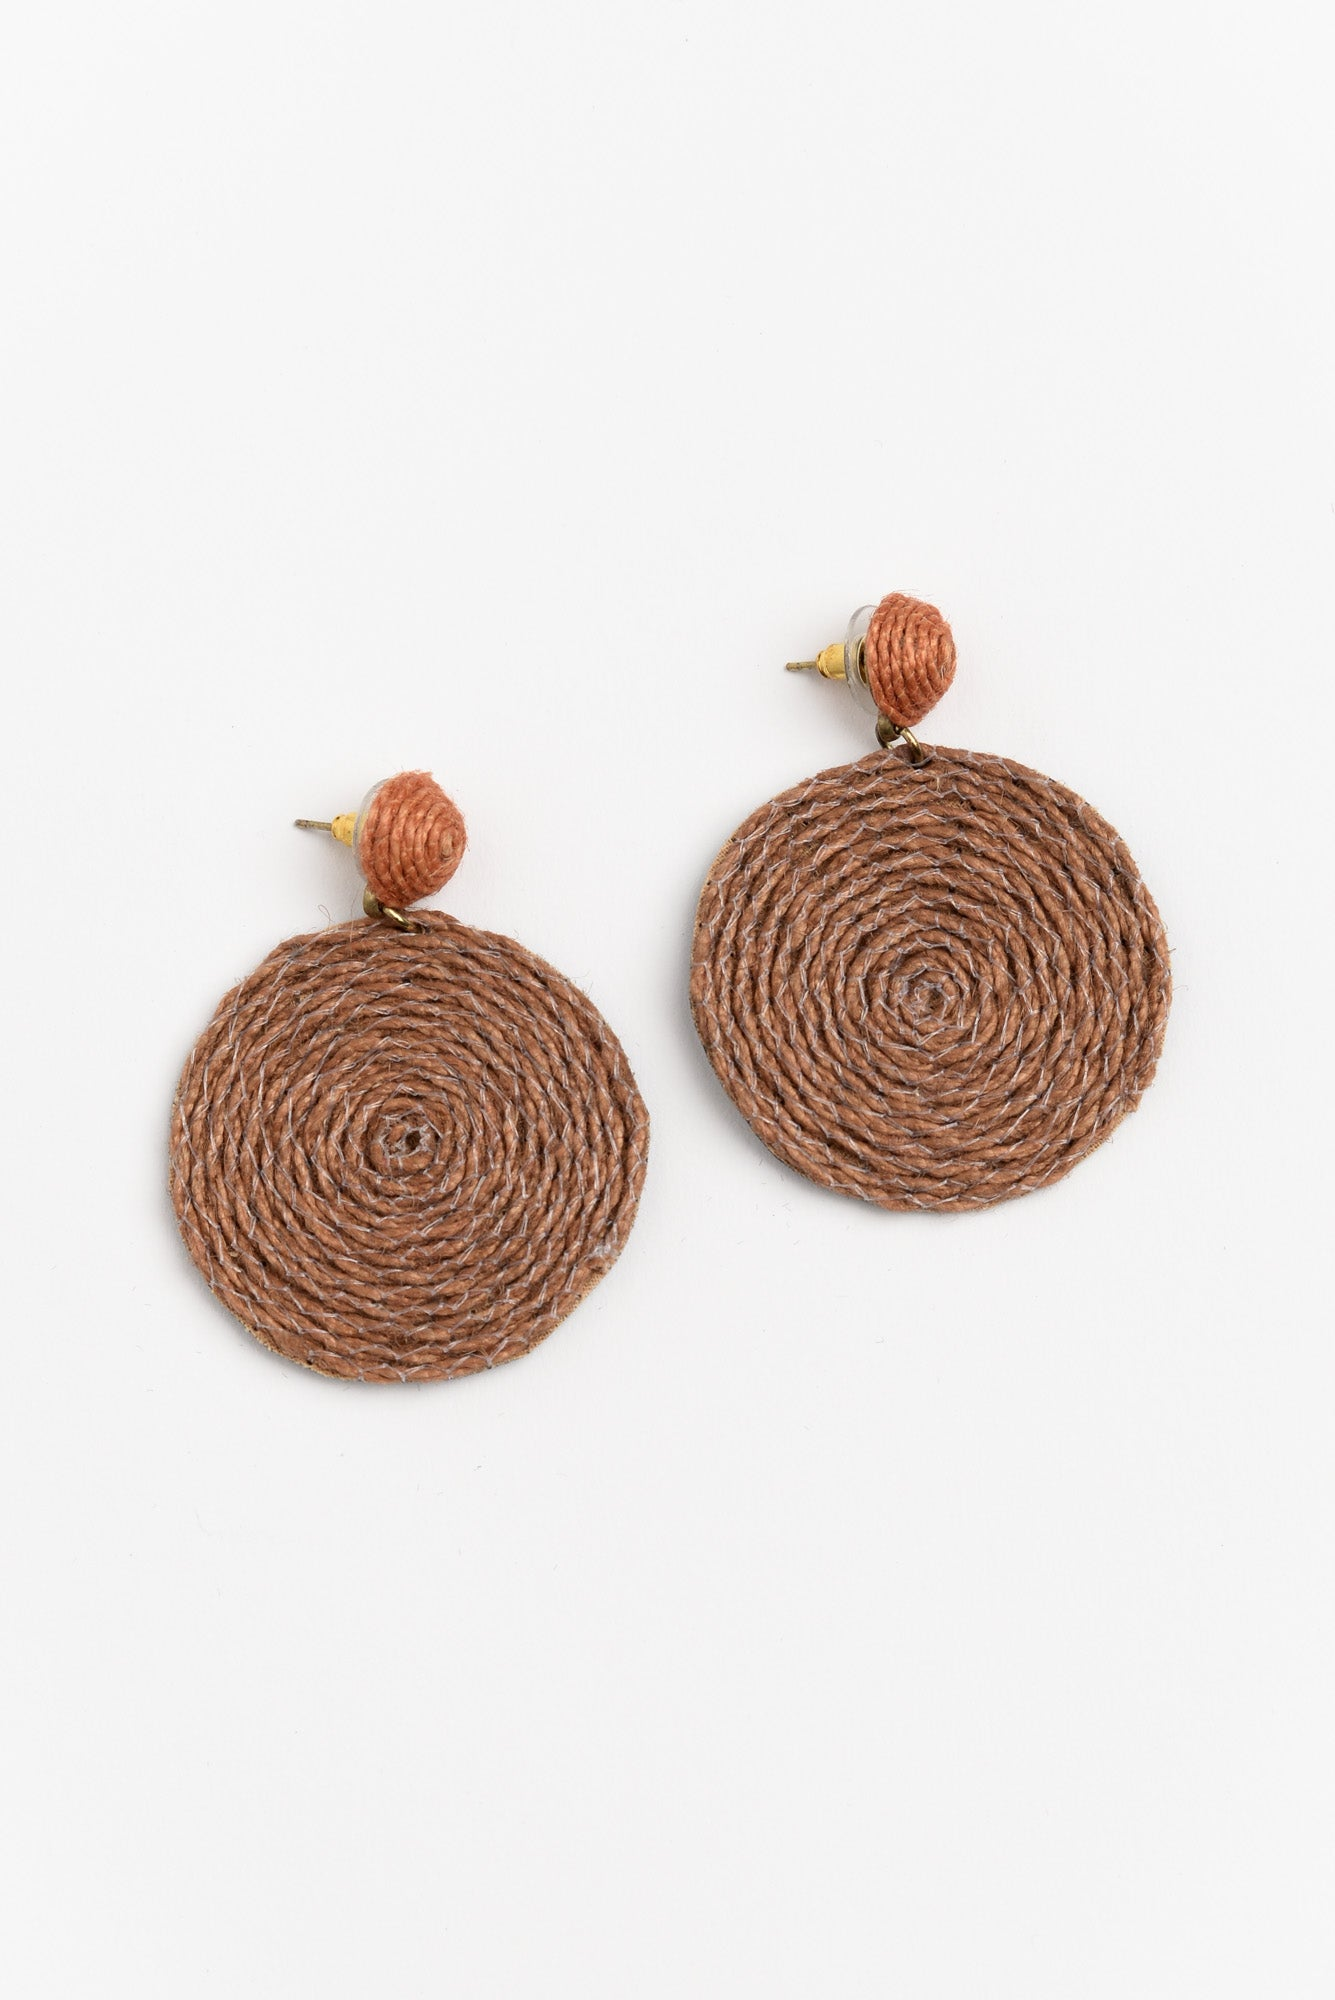 Tilda Brown Coiled String Earring